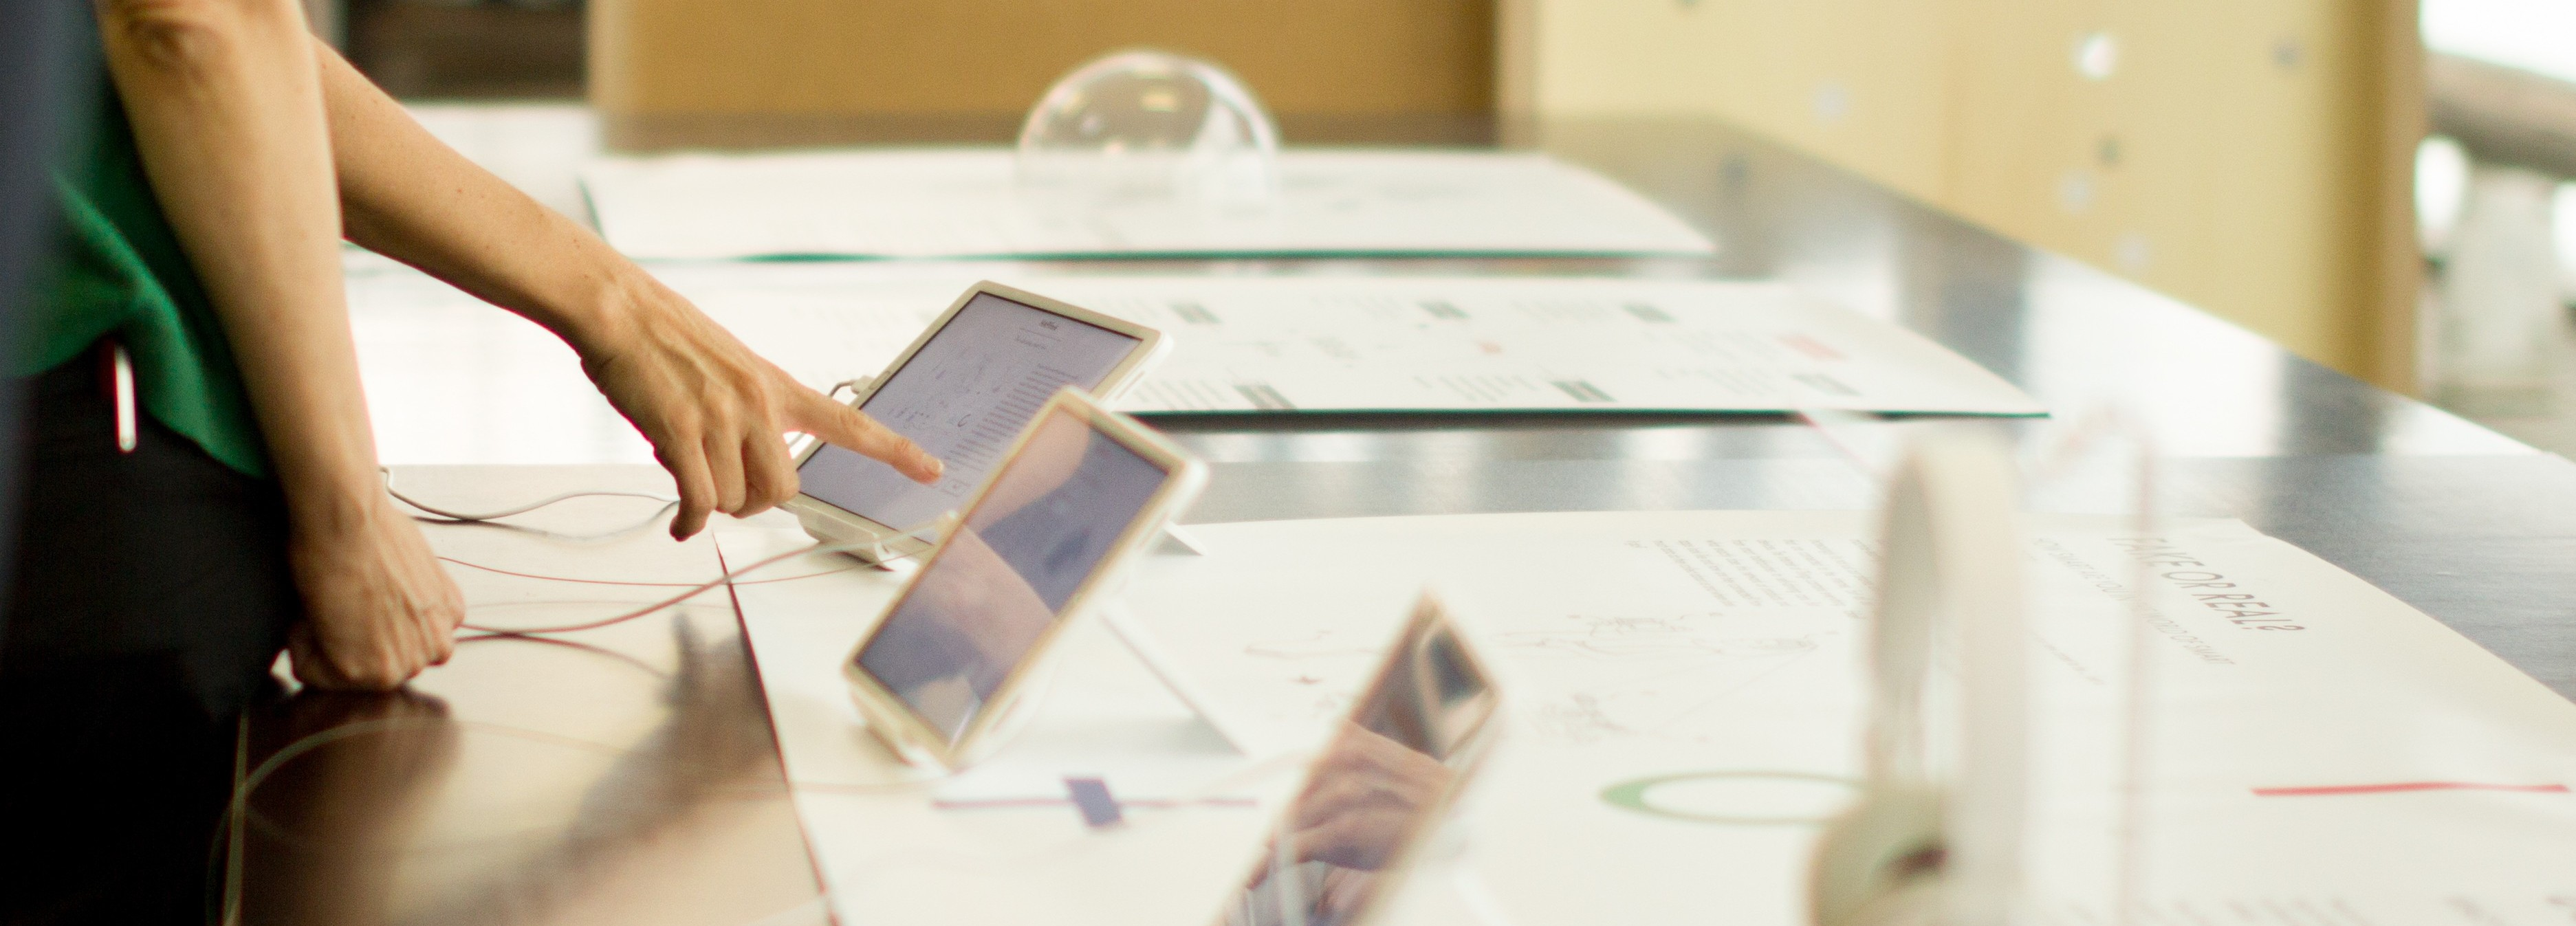 Tablets displayed at a Glass Room Community Edition event in Spain